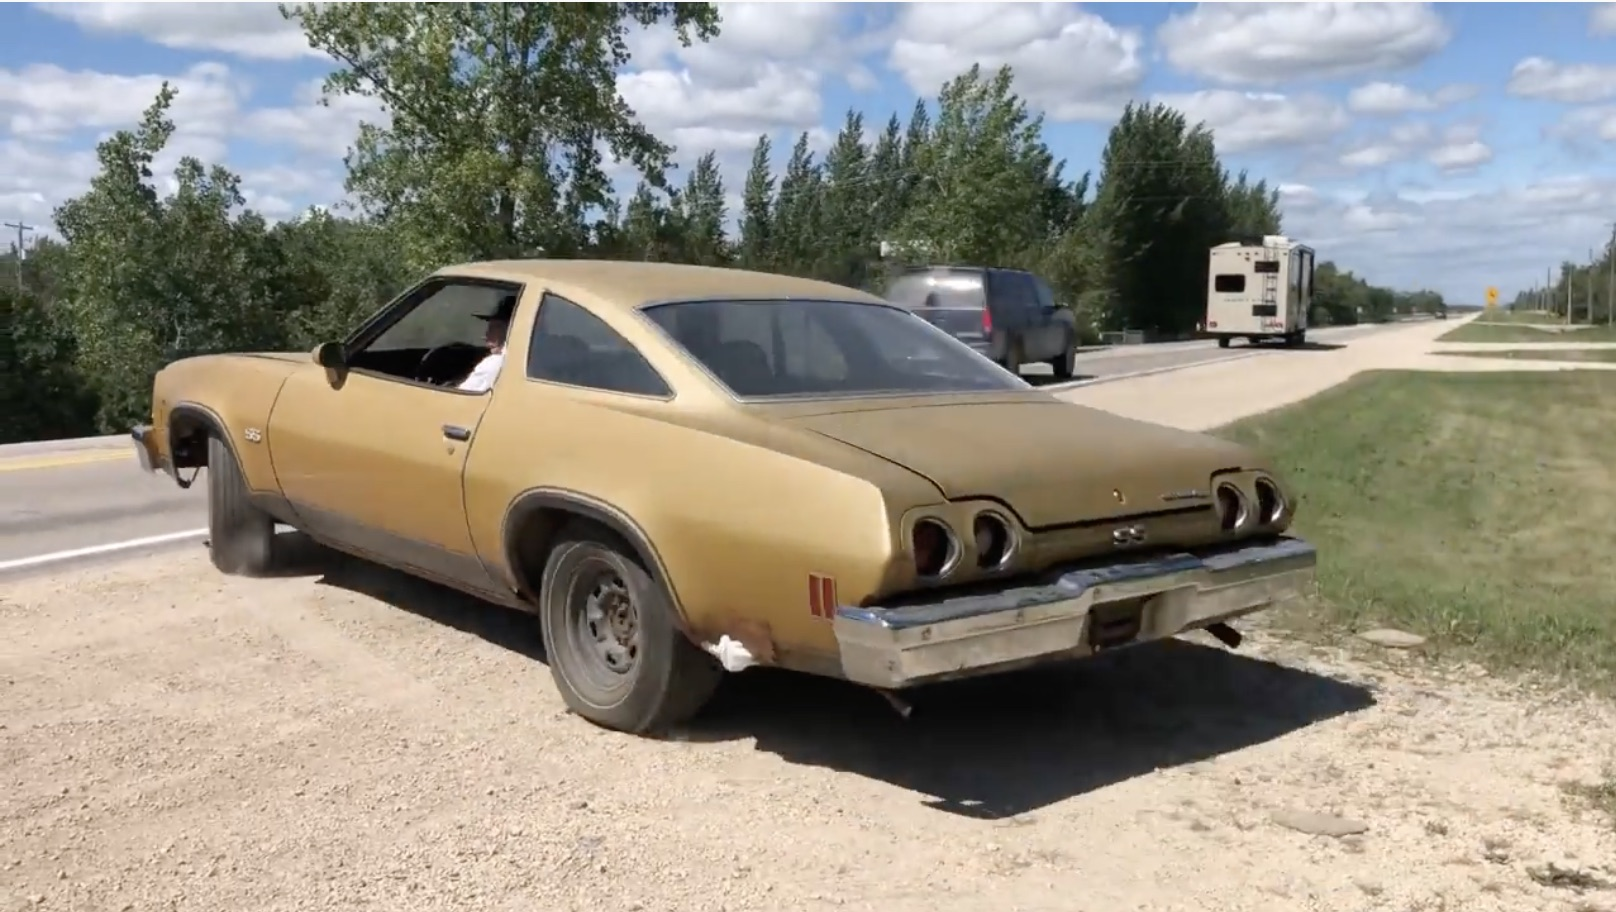 Colonnade CPR: Bringing A 1973 Chevrolet Chevelle SS454 Back To The Outside World